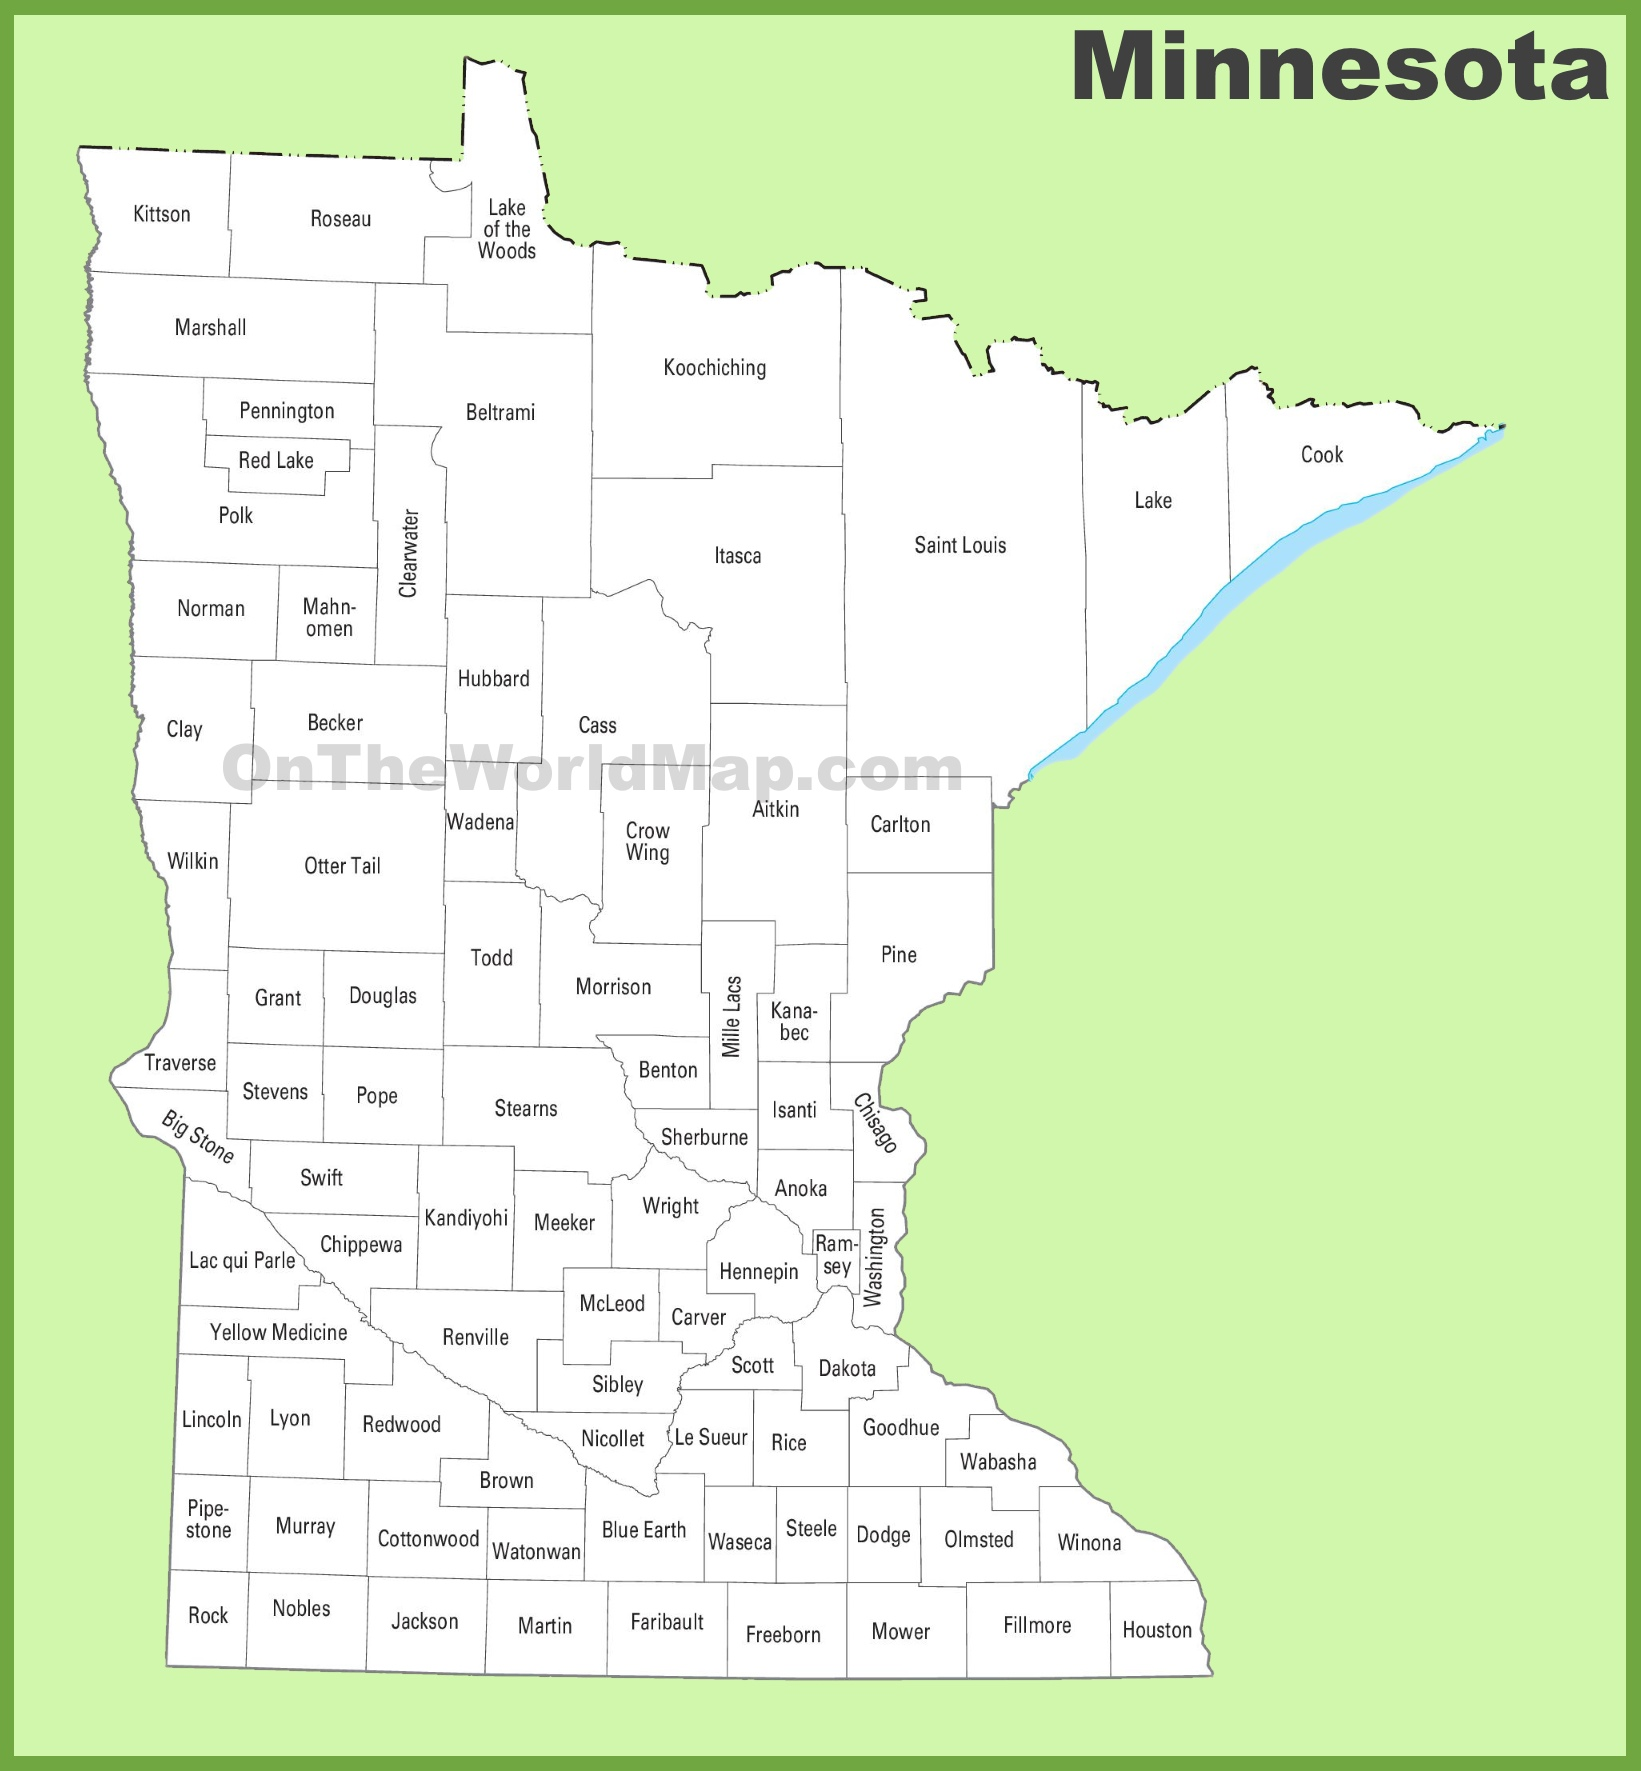 Minnesota County Map - County maps of minnesota